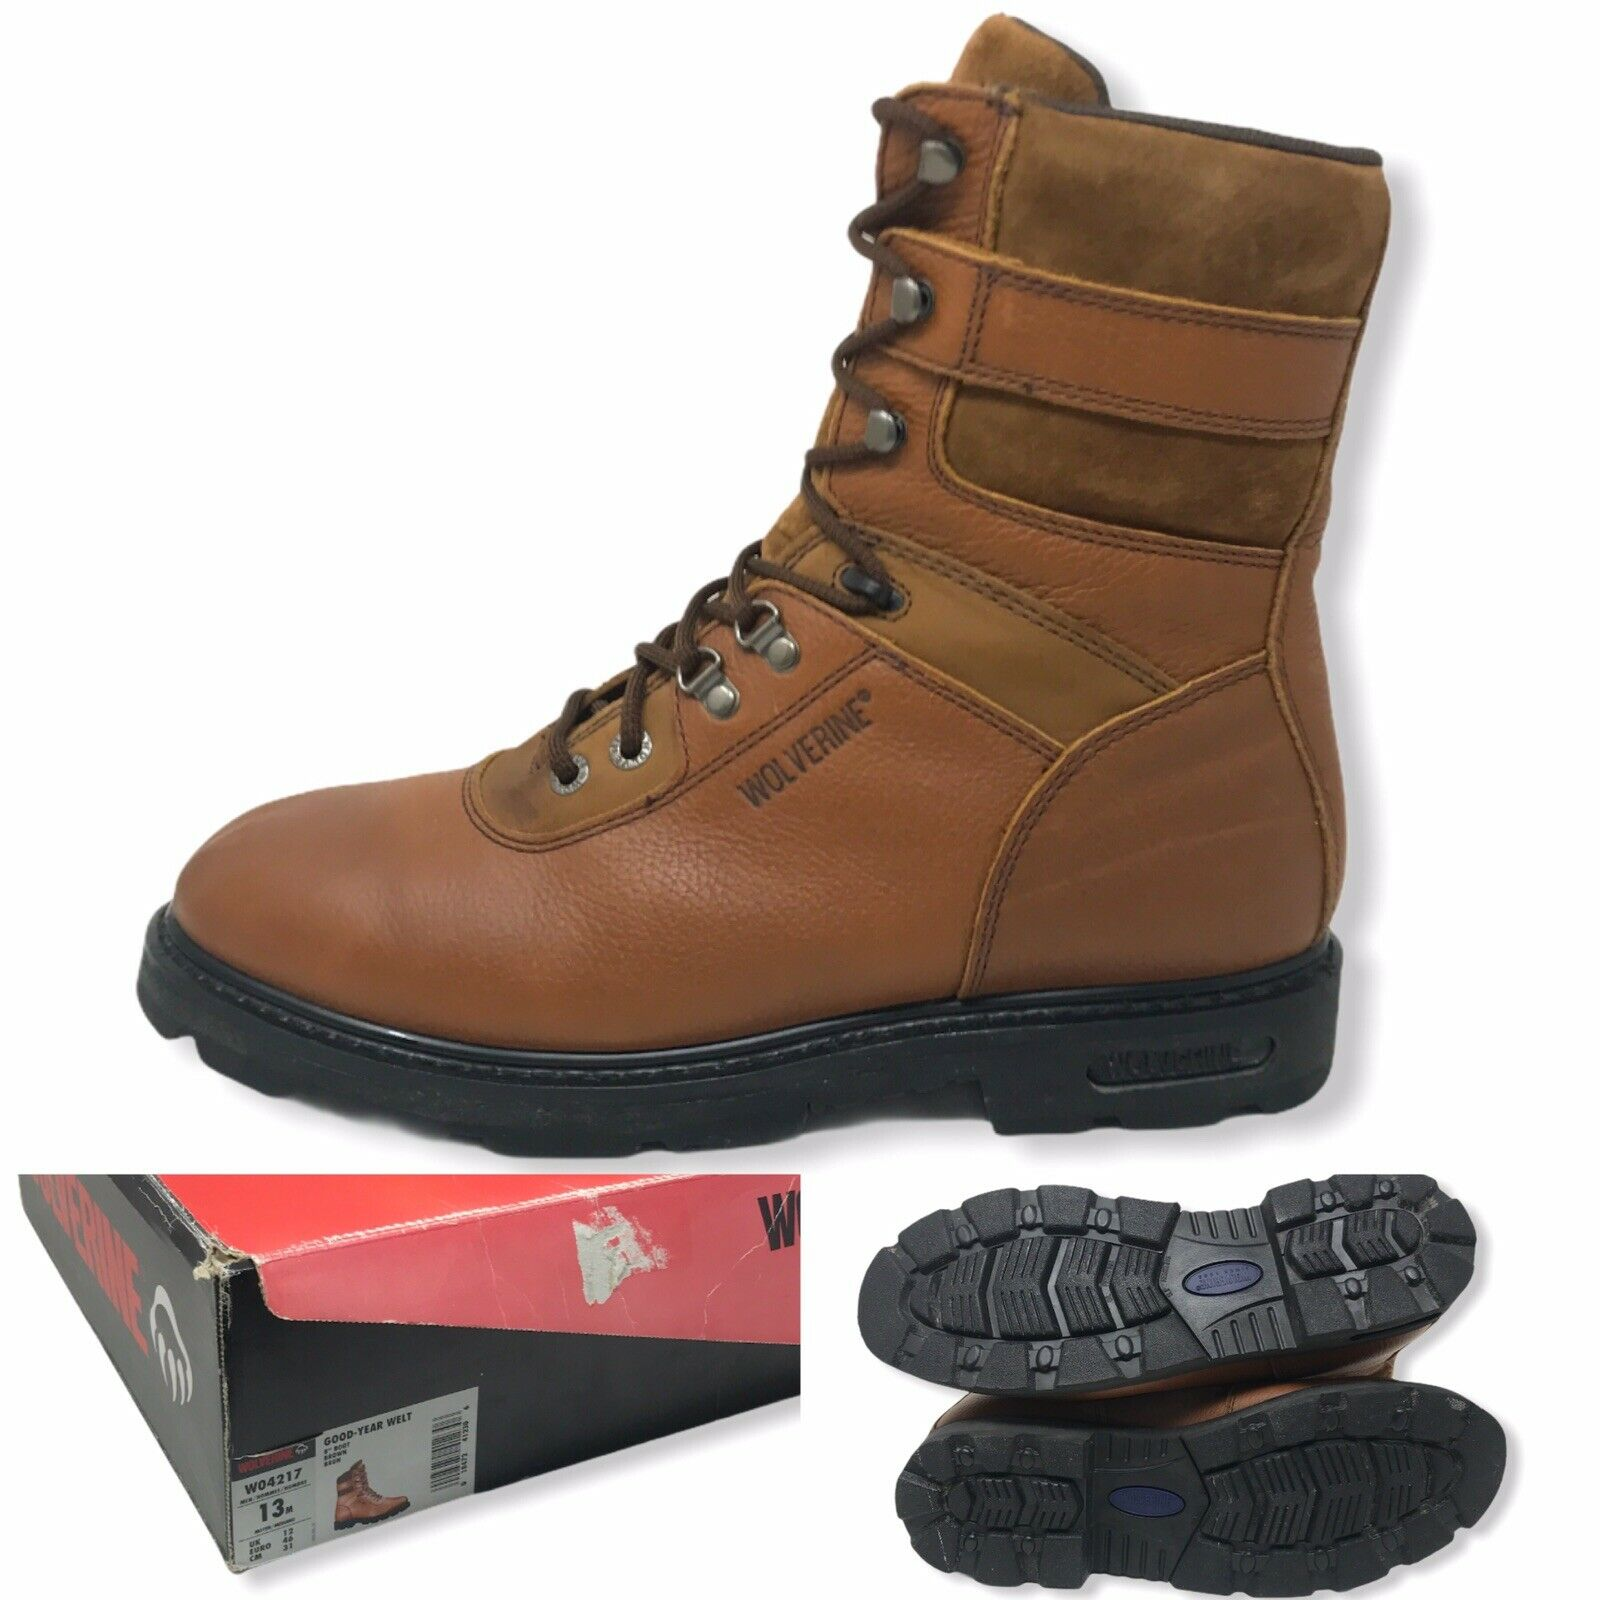 WOLVERINE W04217 Brown Leather Lace-up